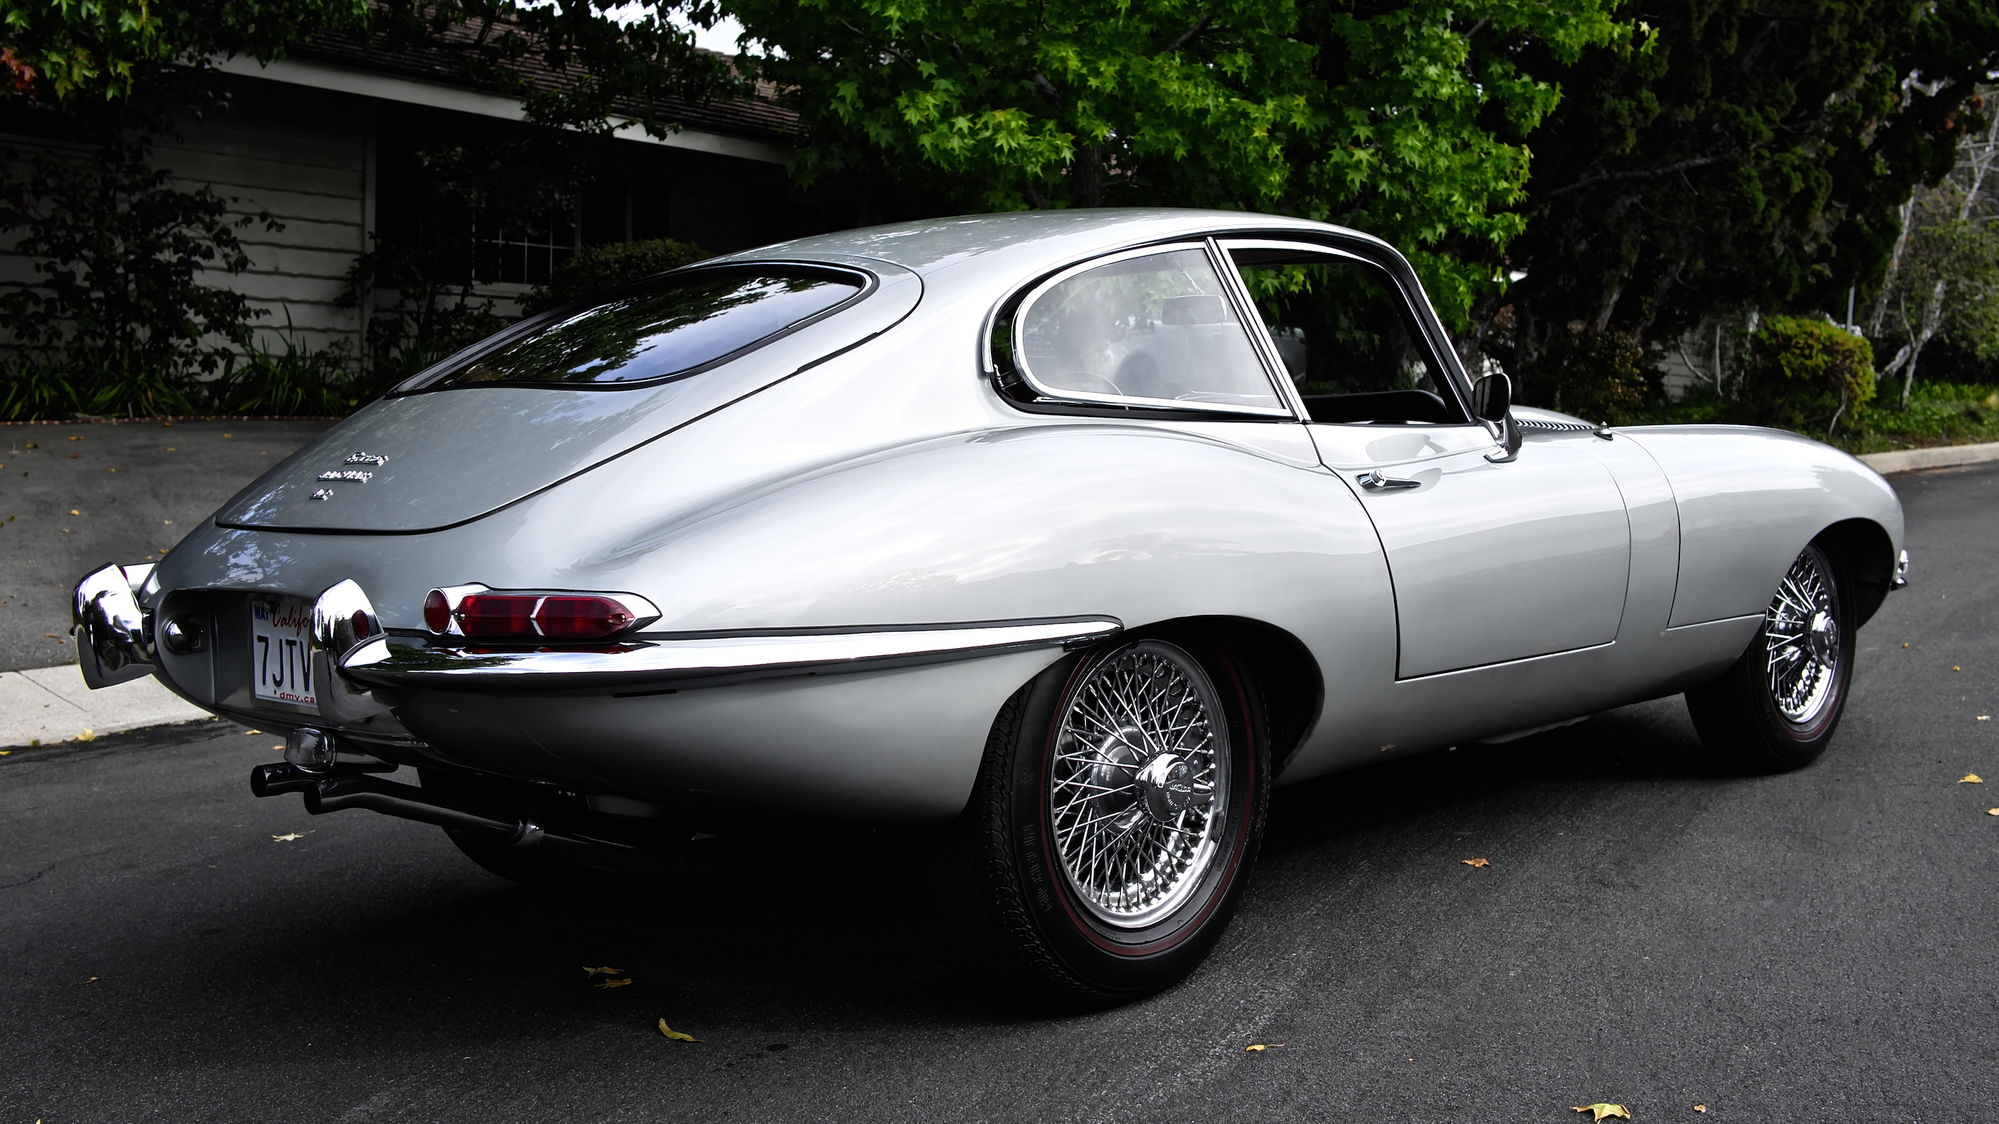 Xkeearlyseat in addition Jaguar Xke X furthermore Main L together with Mgaregueq Sgei moreover Finished Interior Top Down. on 1966 jaguar xke coupe